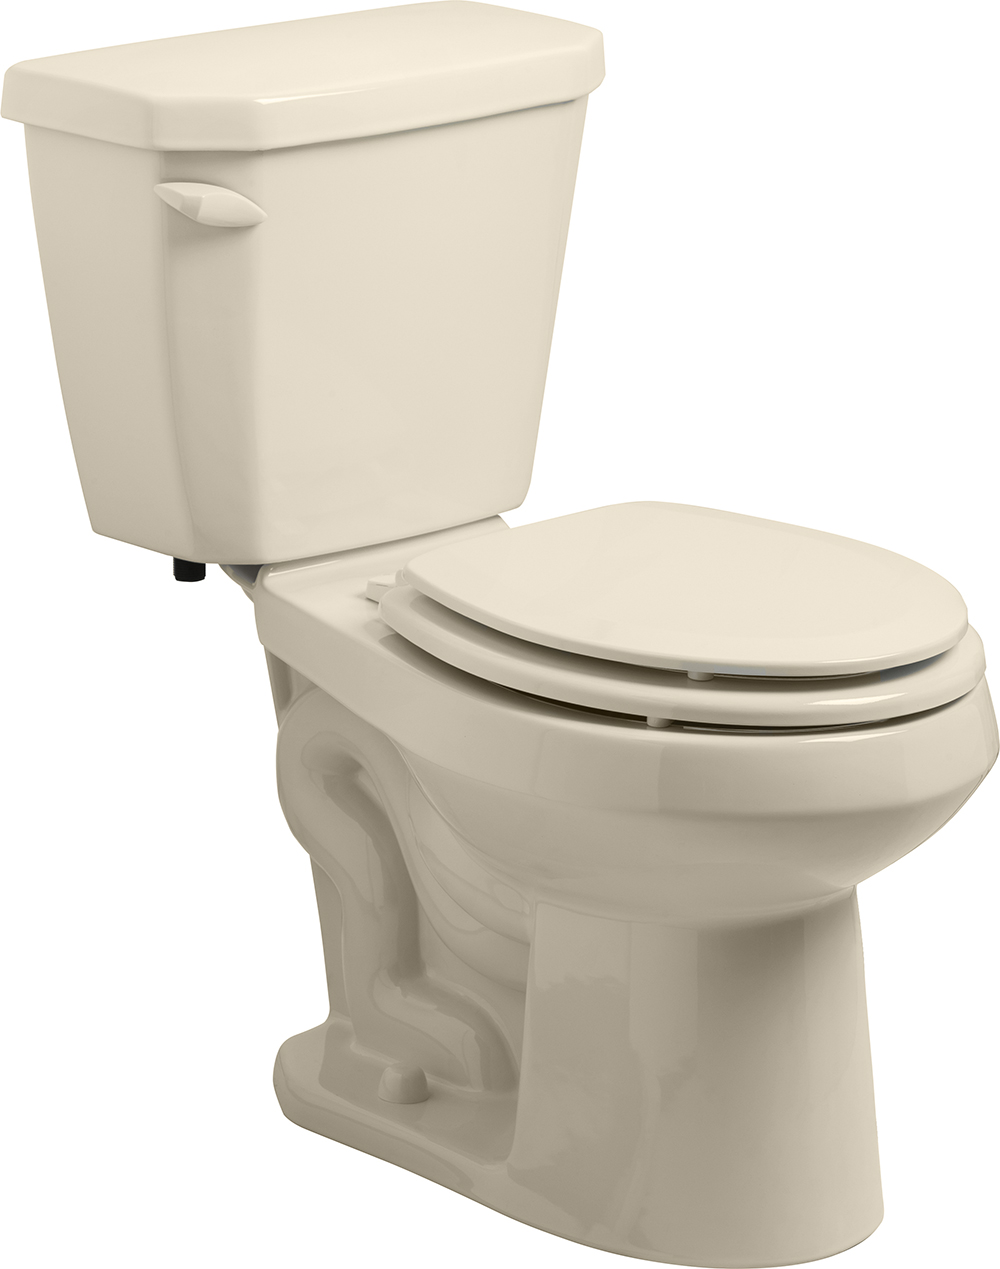 Viper 174 1 28 Gpf 12 Quot Rough In Two Piece Round Front Toilet